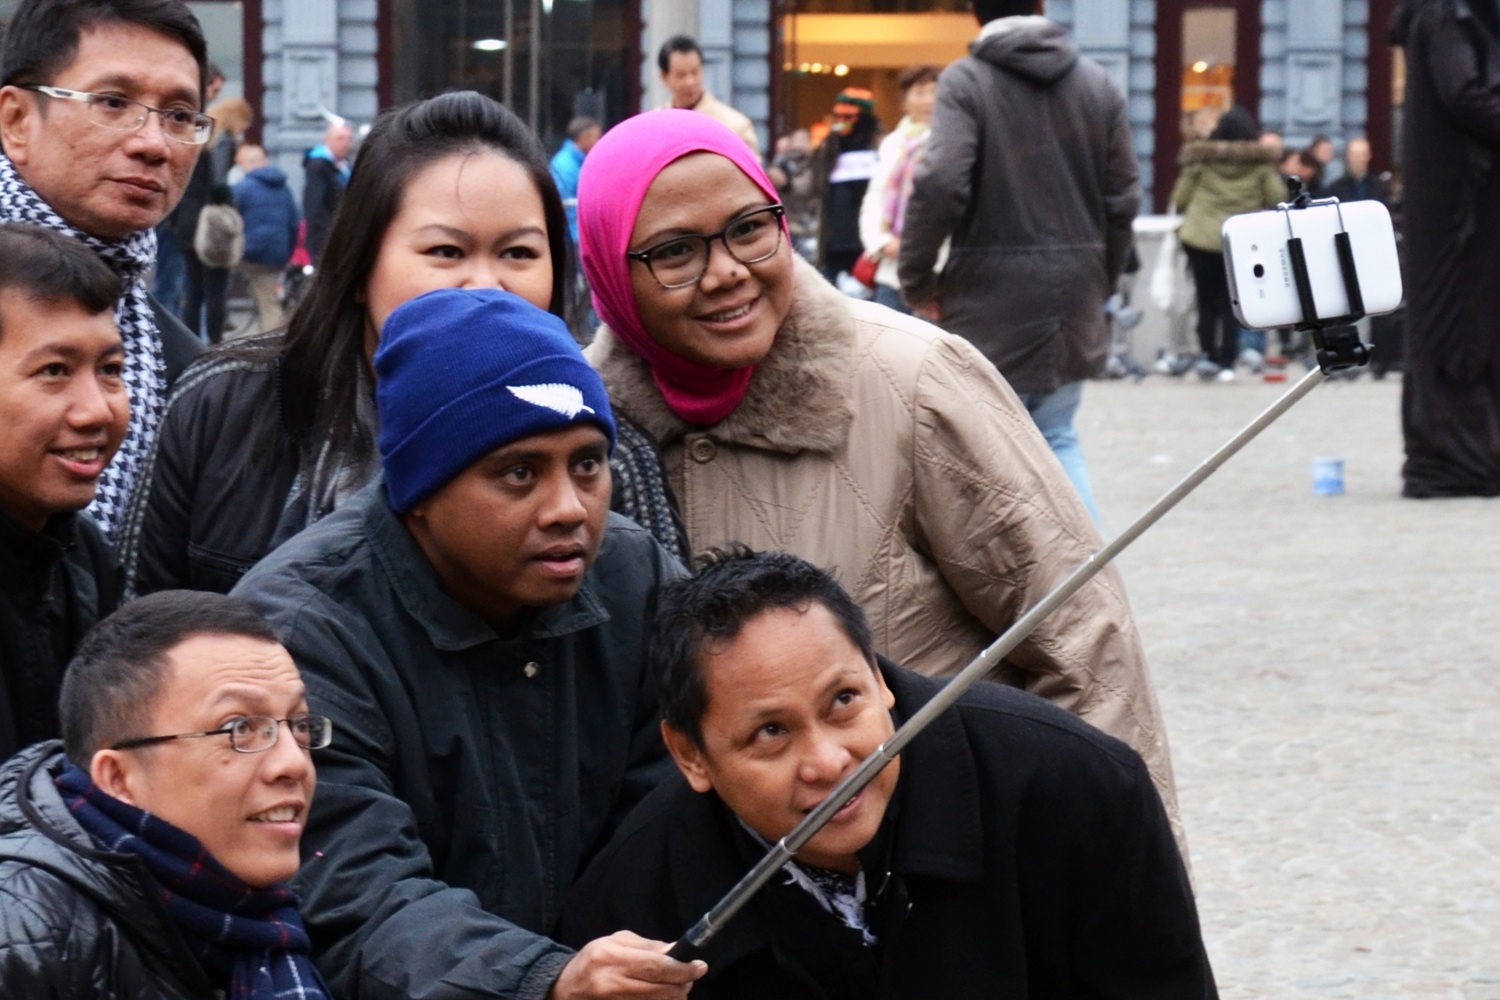 Why did South Korea Just Ban Selfie Sticks?